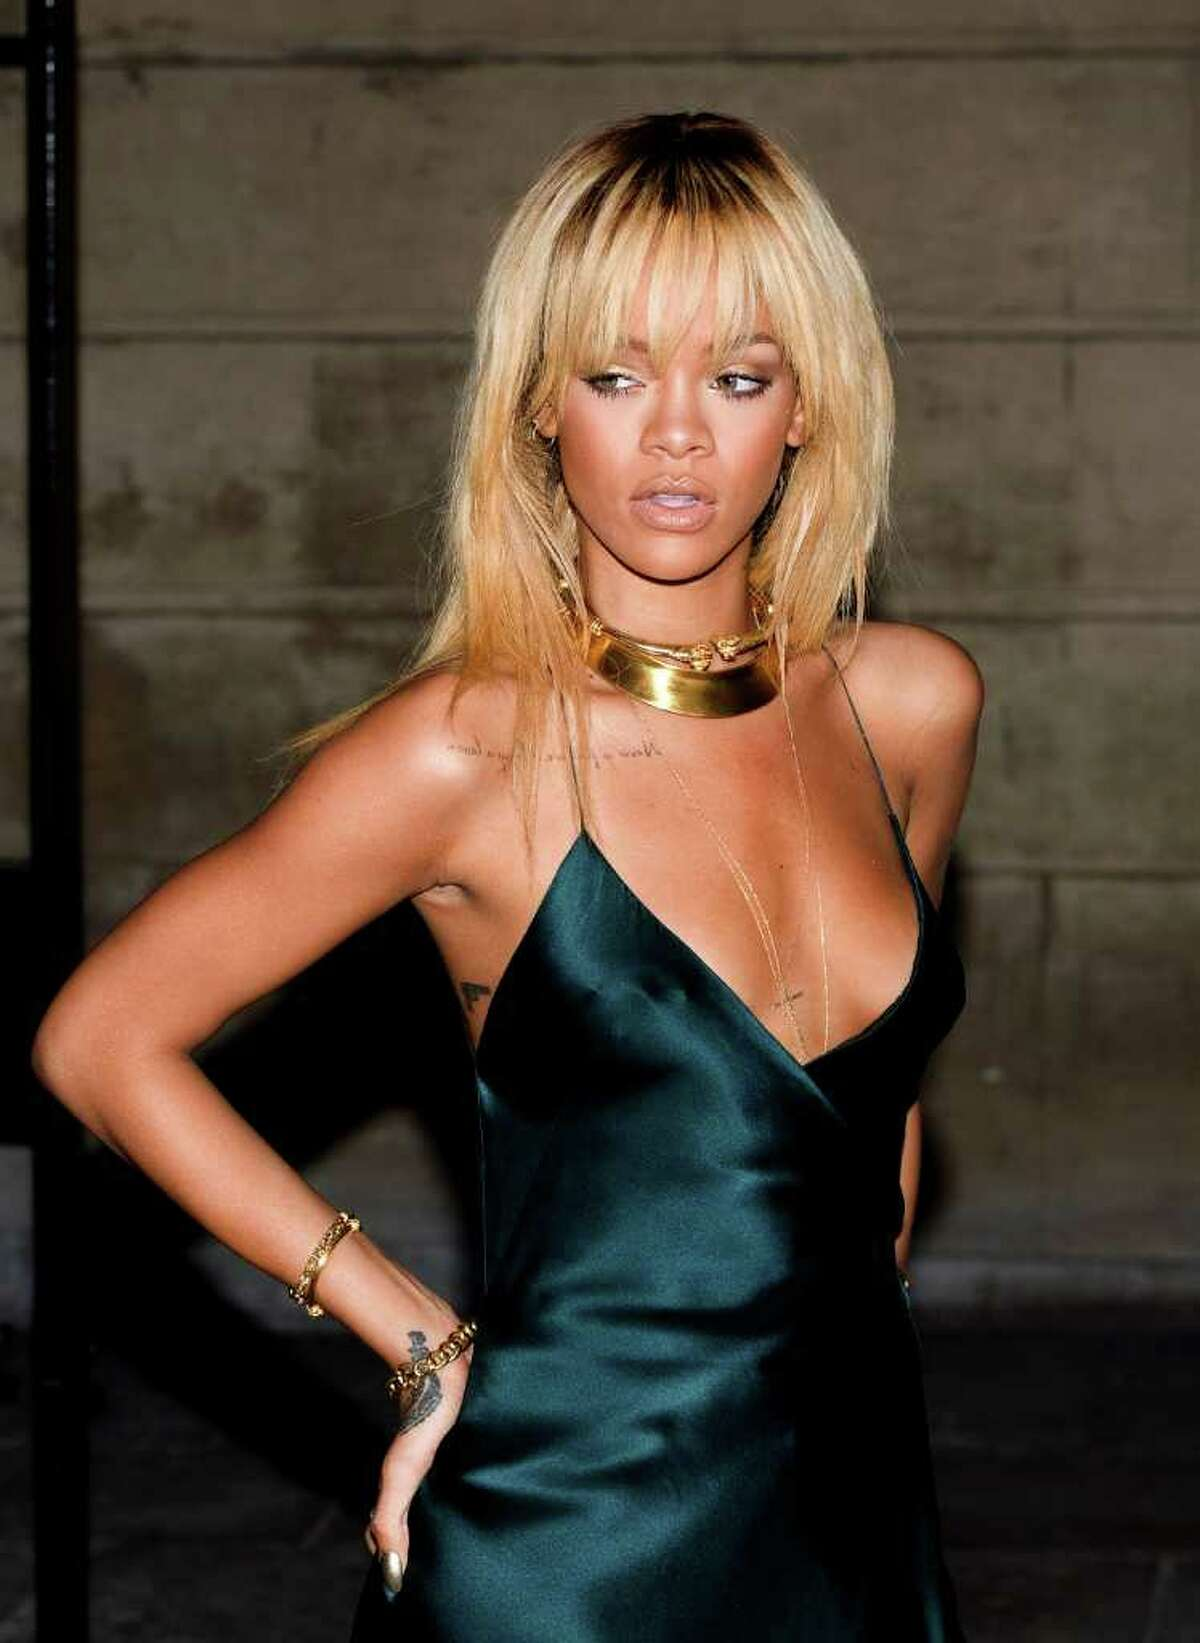 LONDON - FEBRUARY 18: Rihanna arrives for the Stella McCartney Special Presentation at 13 North Audley Street during London Fashion Week Autumn/Winter 2012 on February 18, 2012 in London, England. (Photo by Samir Hussein/Getty Images)